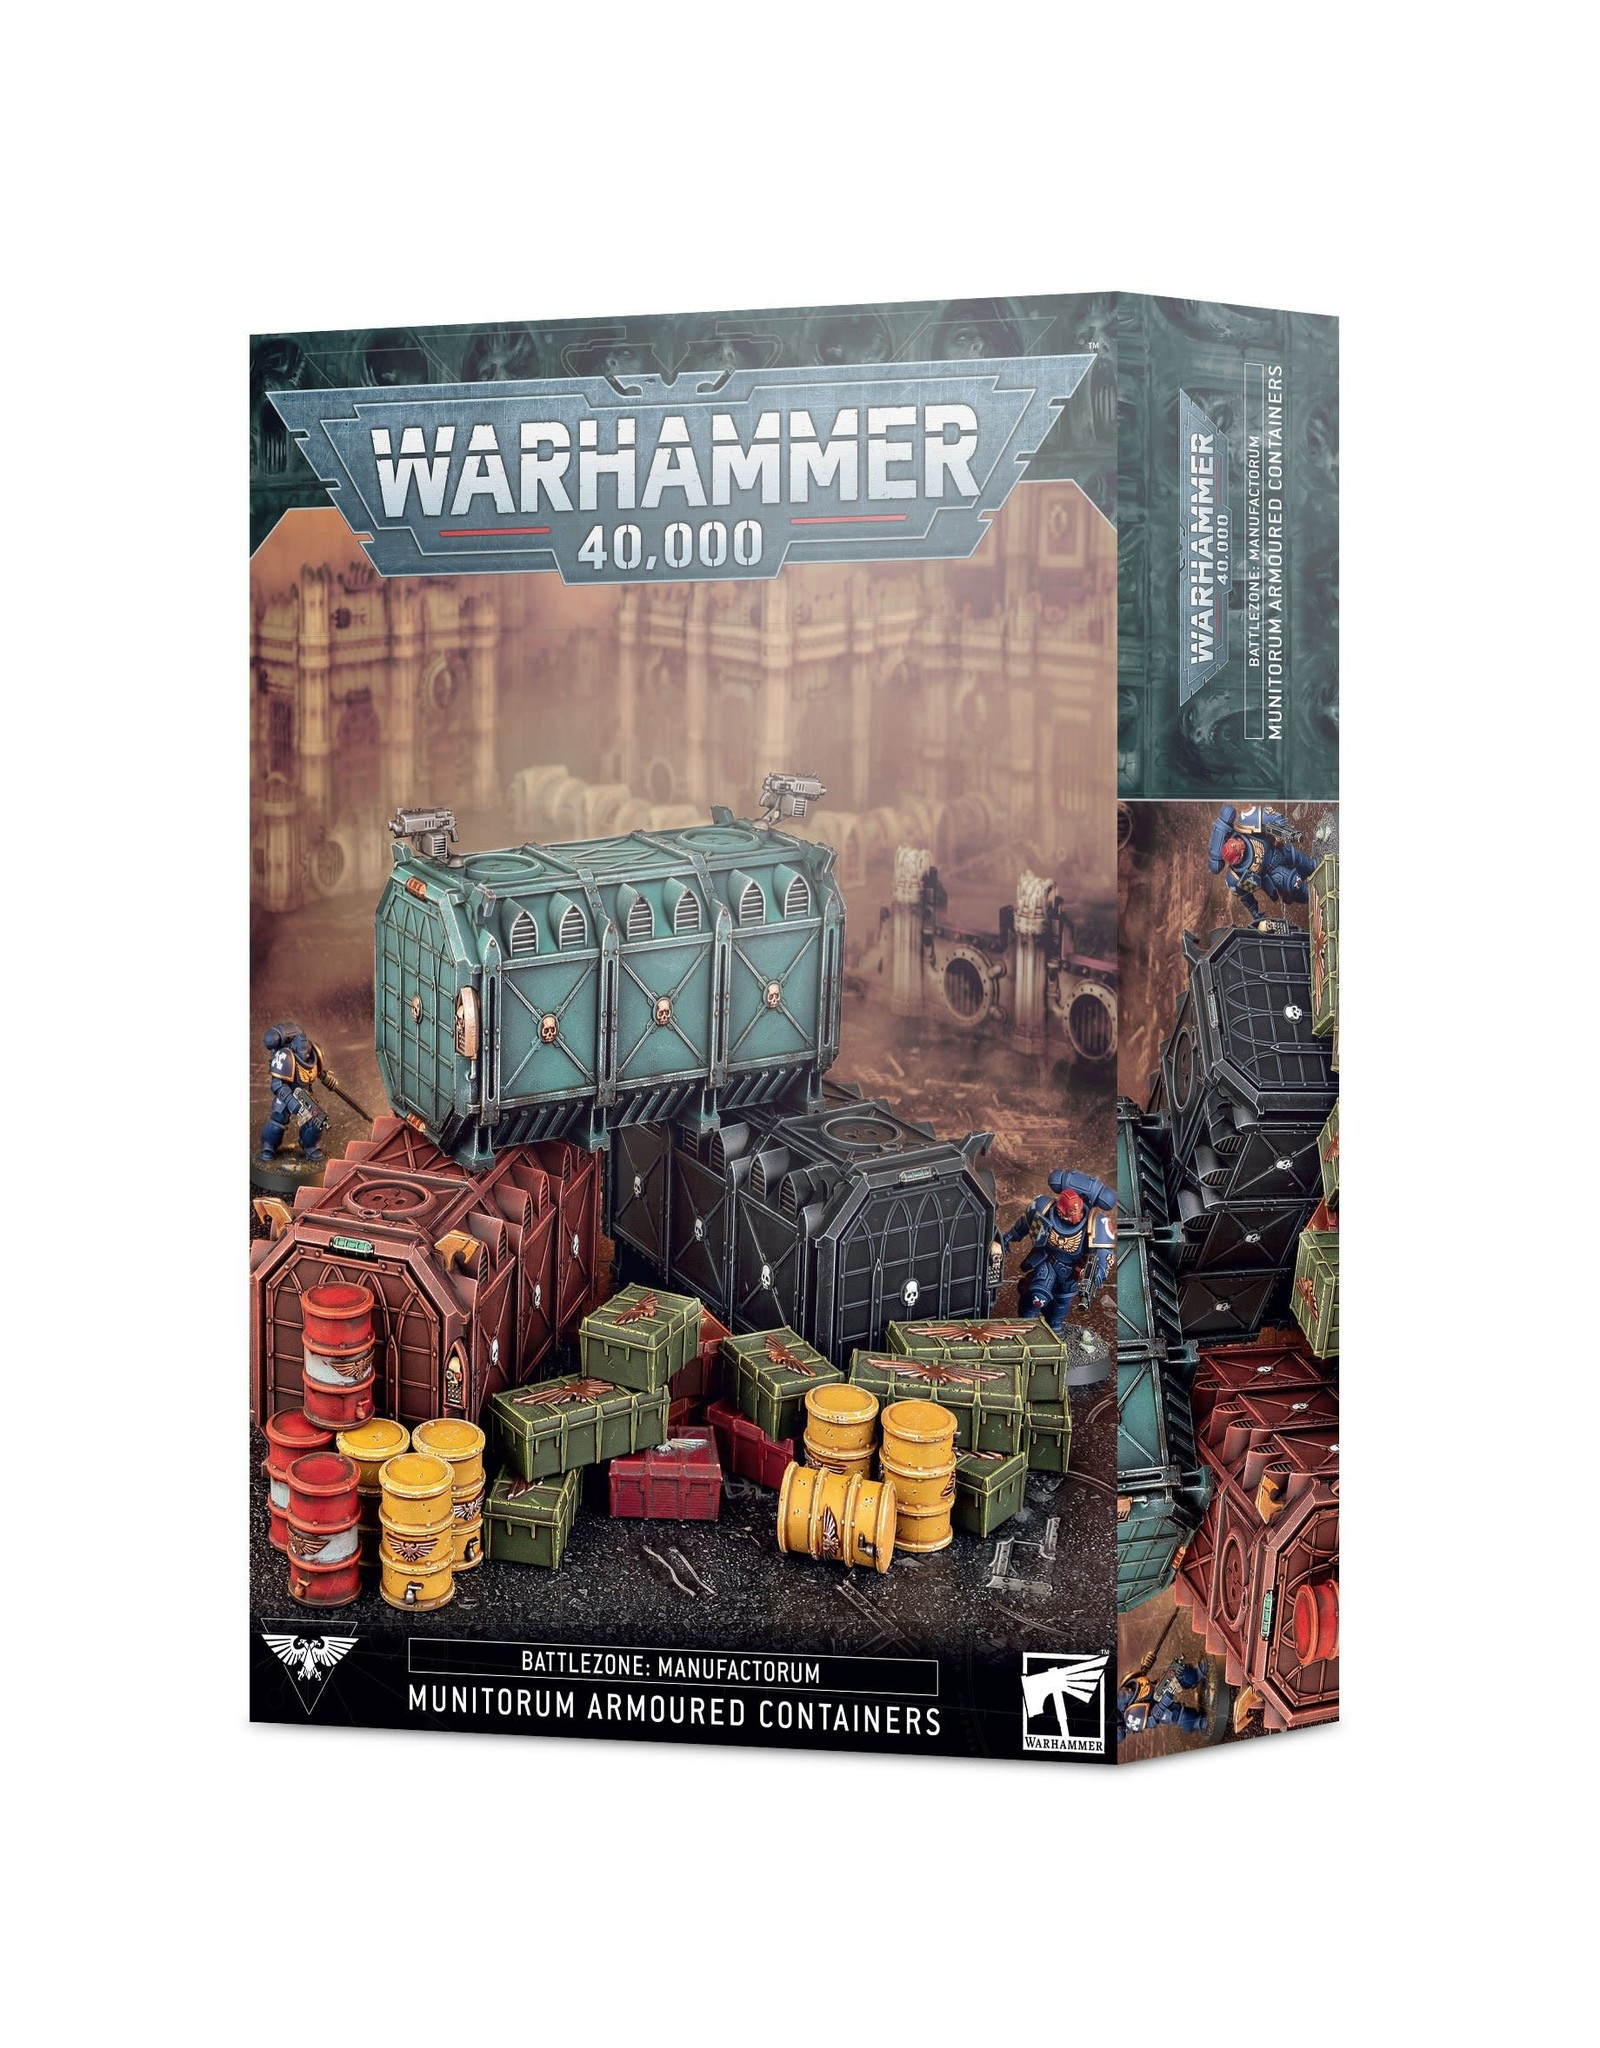 Warhammer 40k BATTLEZONE: MUNITORUM ARMOURED CONTAINERS